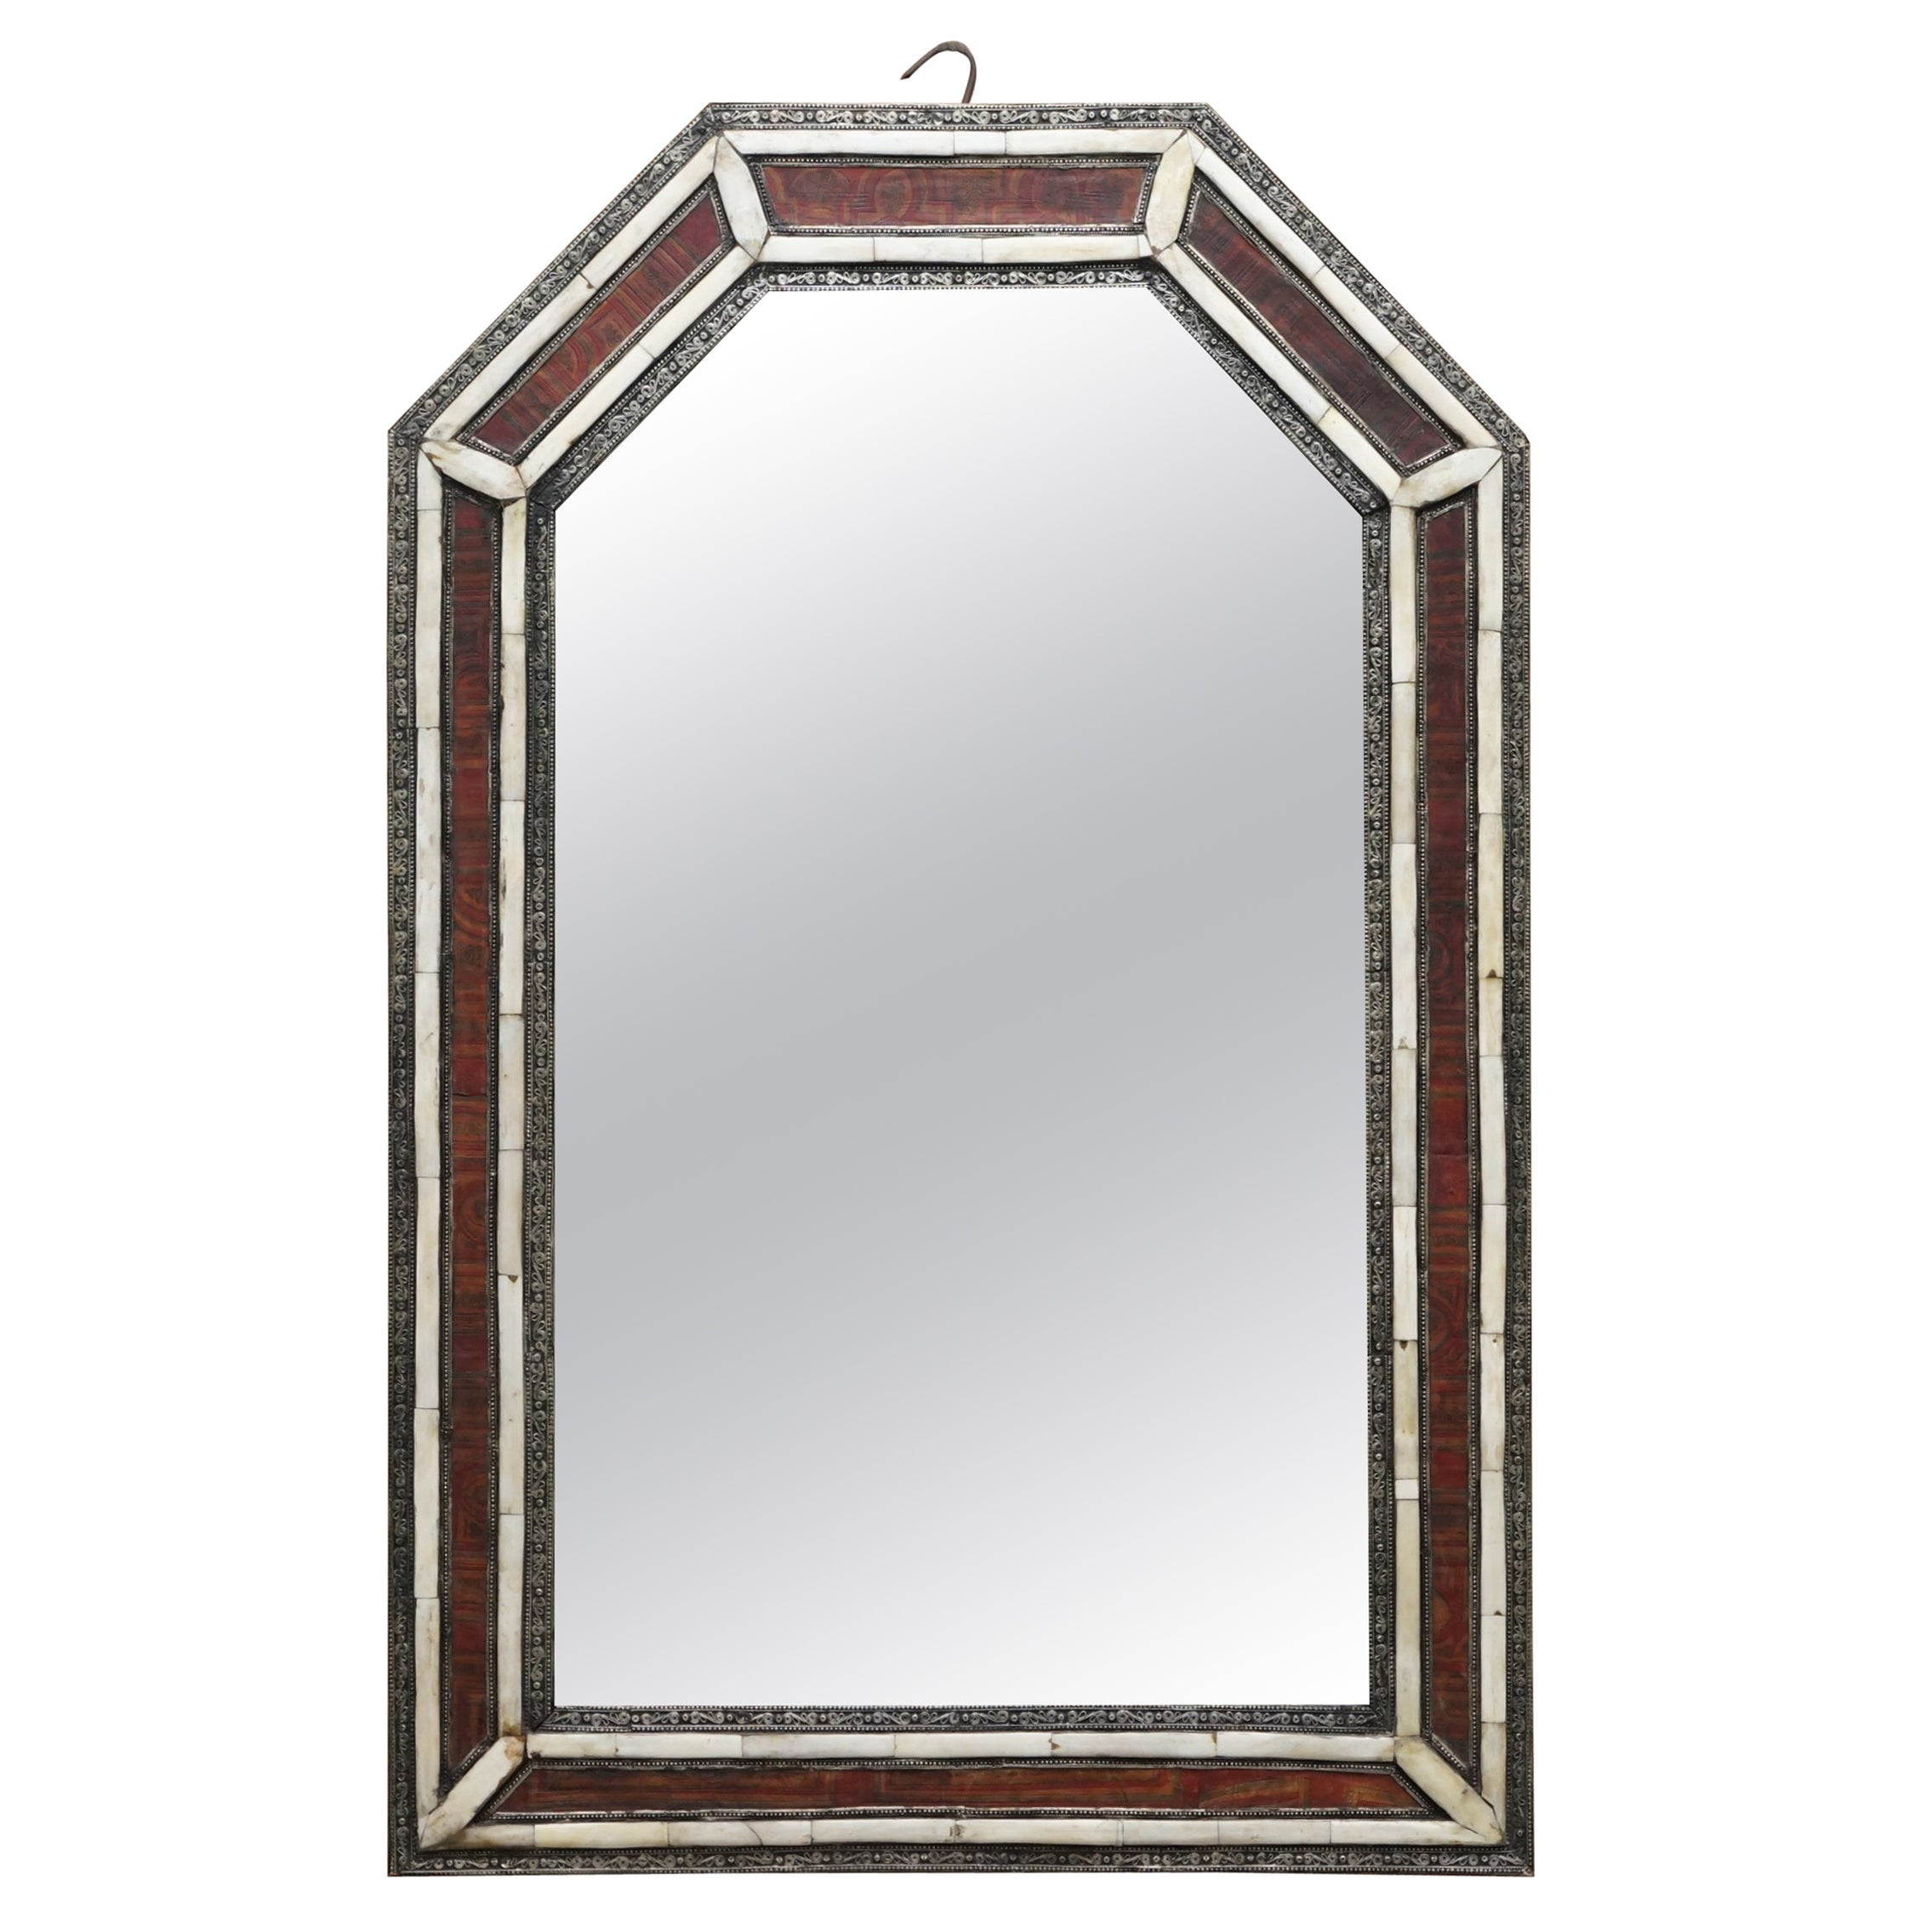 Lovely Ornate circa 19th Century Morrish Silver & Bone Inlaid Large Wall Mirror